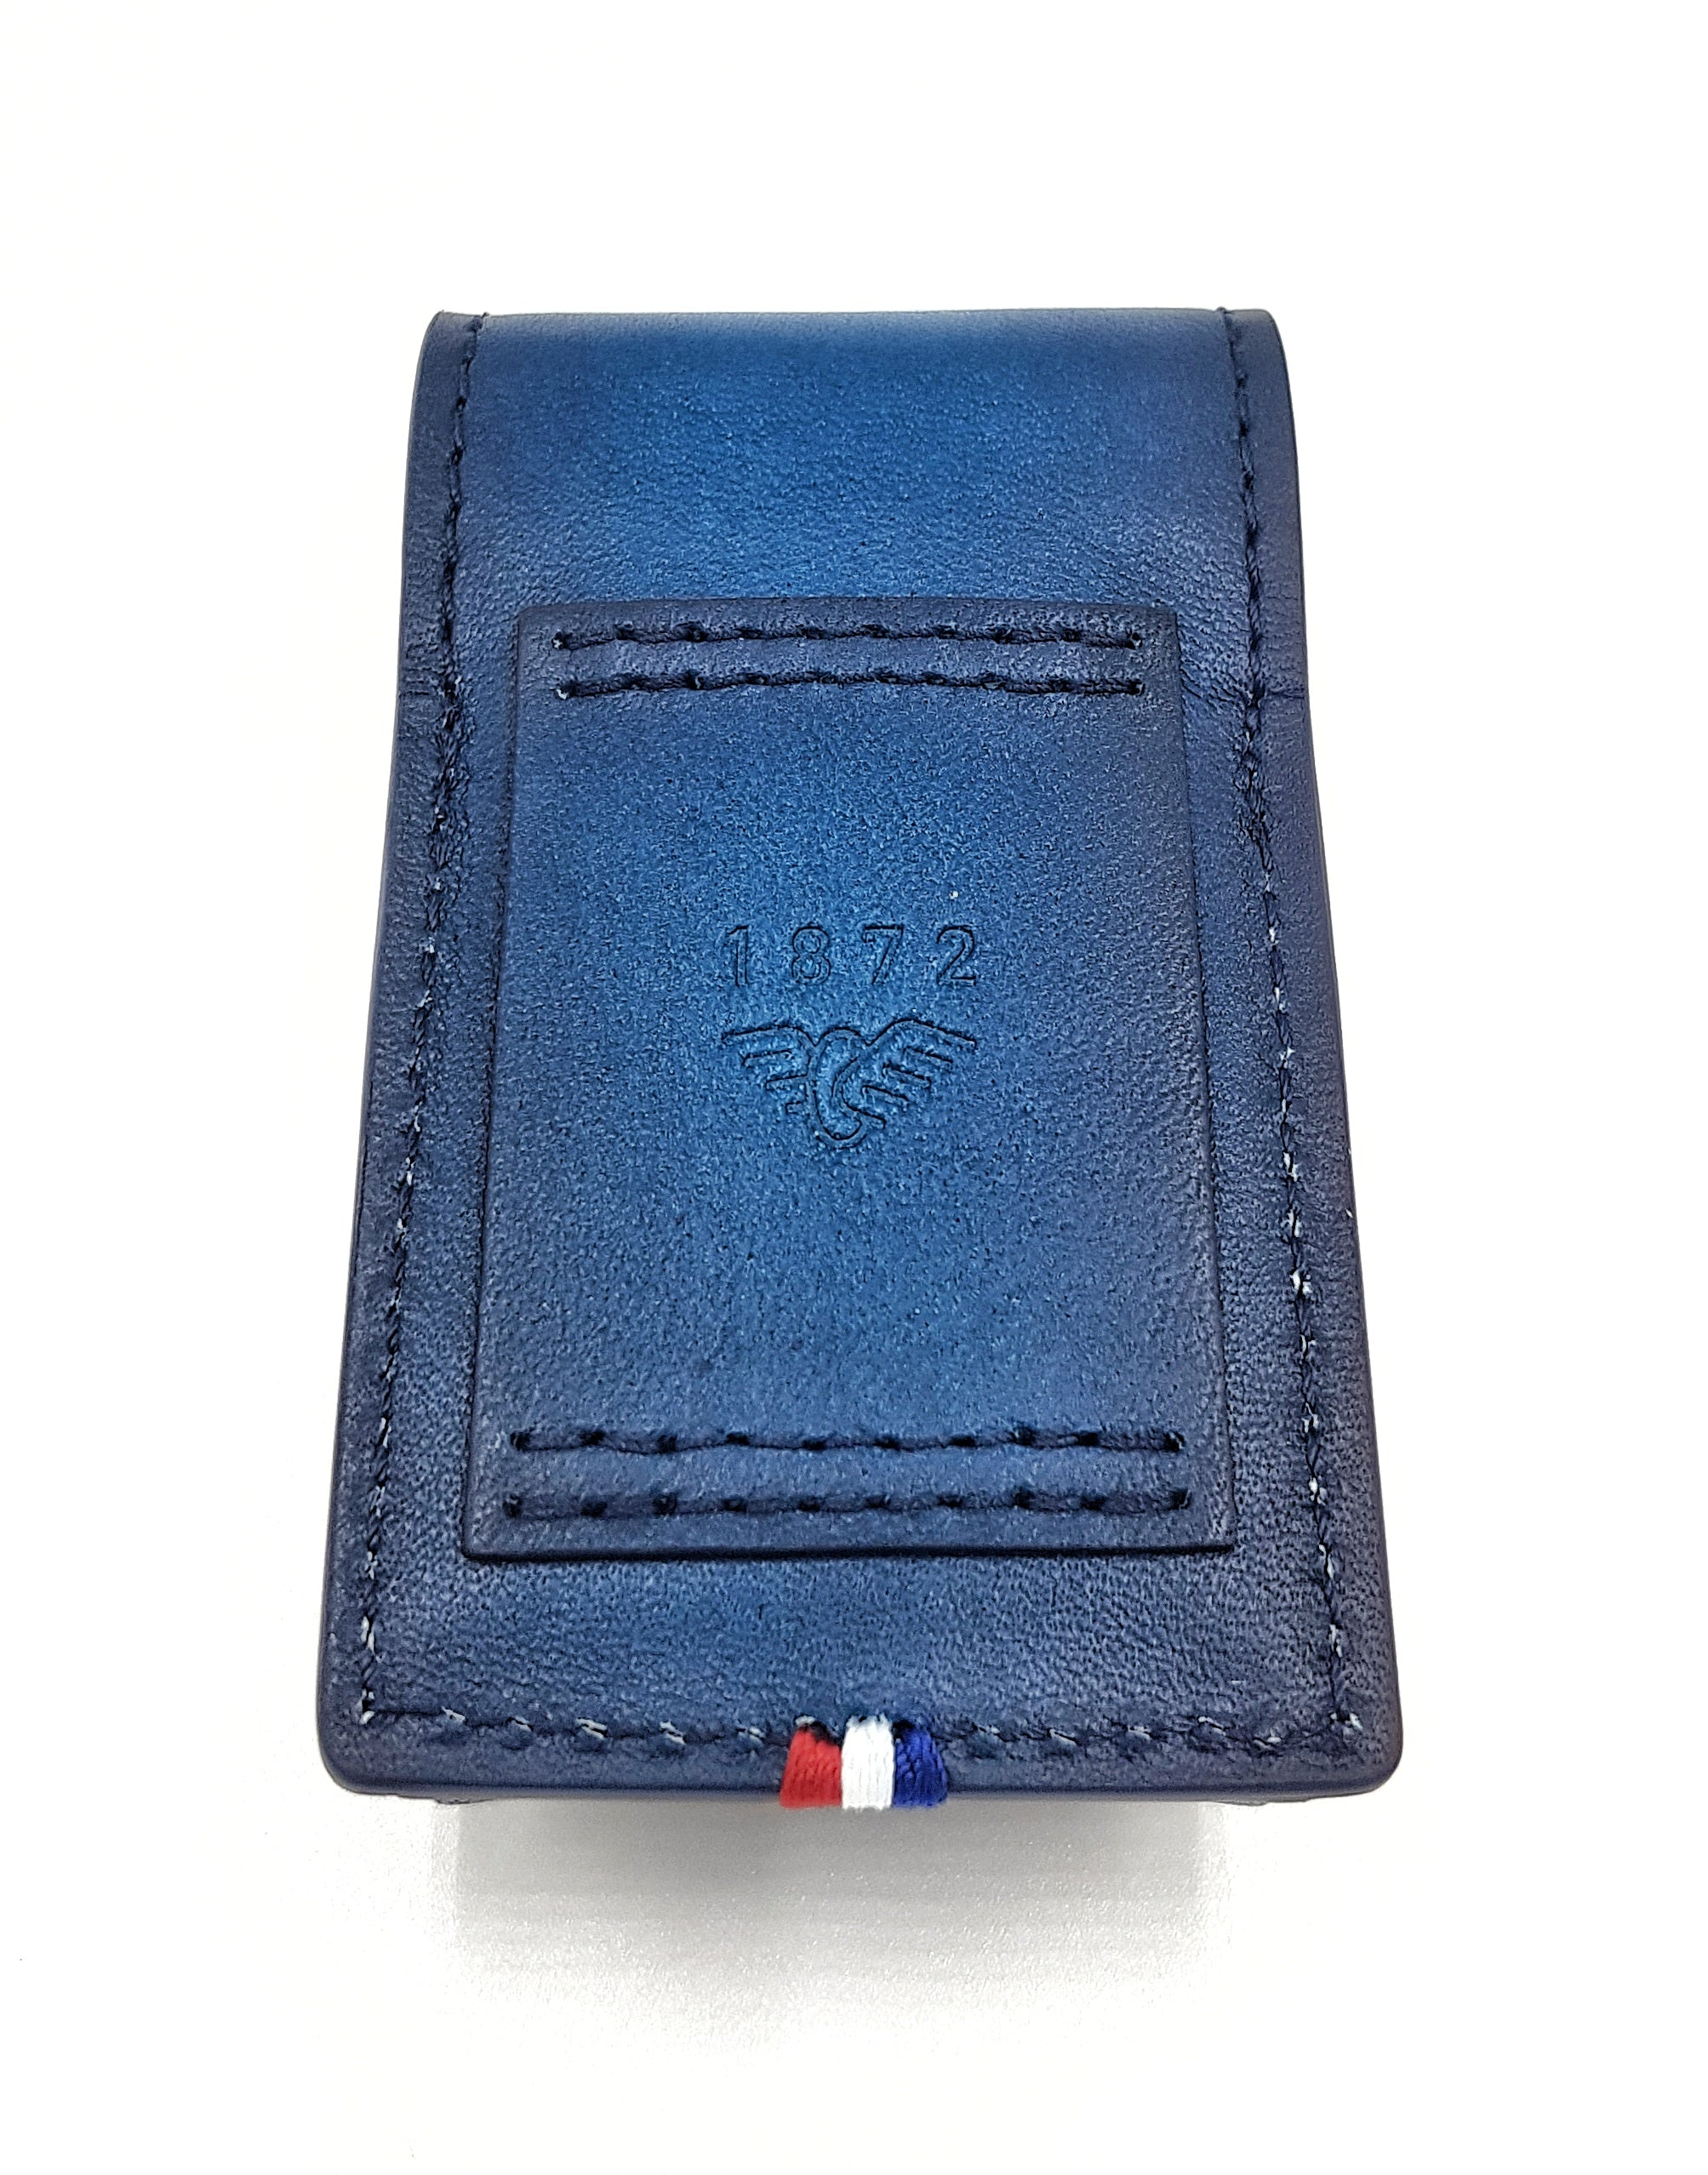 a8fee26800ca S.T. Dupont - Le Grand - L2 Lighter Case - Blue - Havana Cigar Exchange